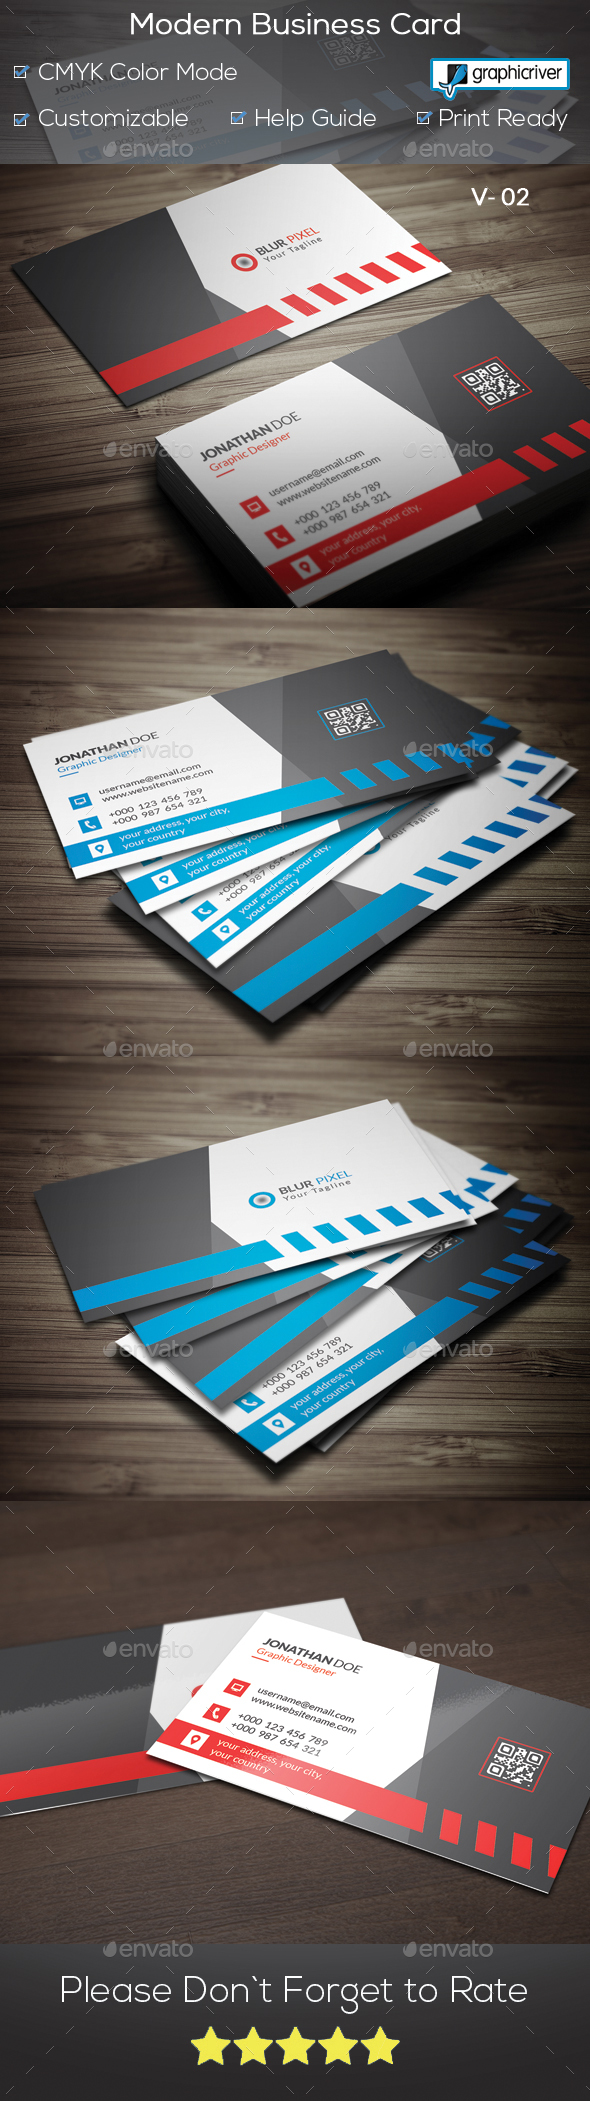 GraphicRiver Modern Business Card V.2 21098556